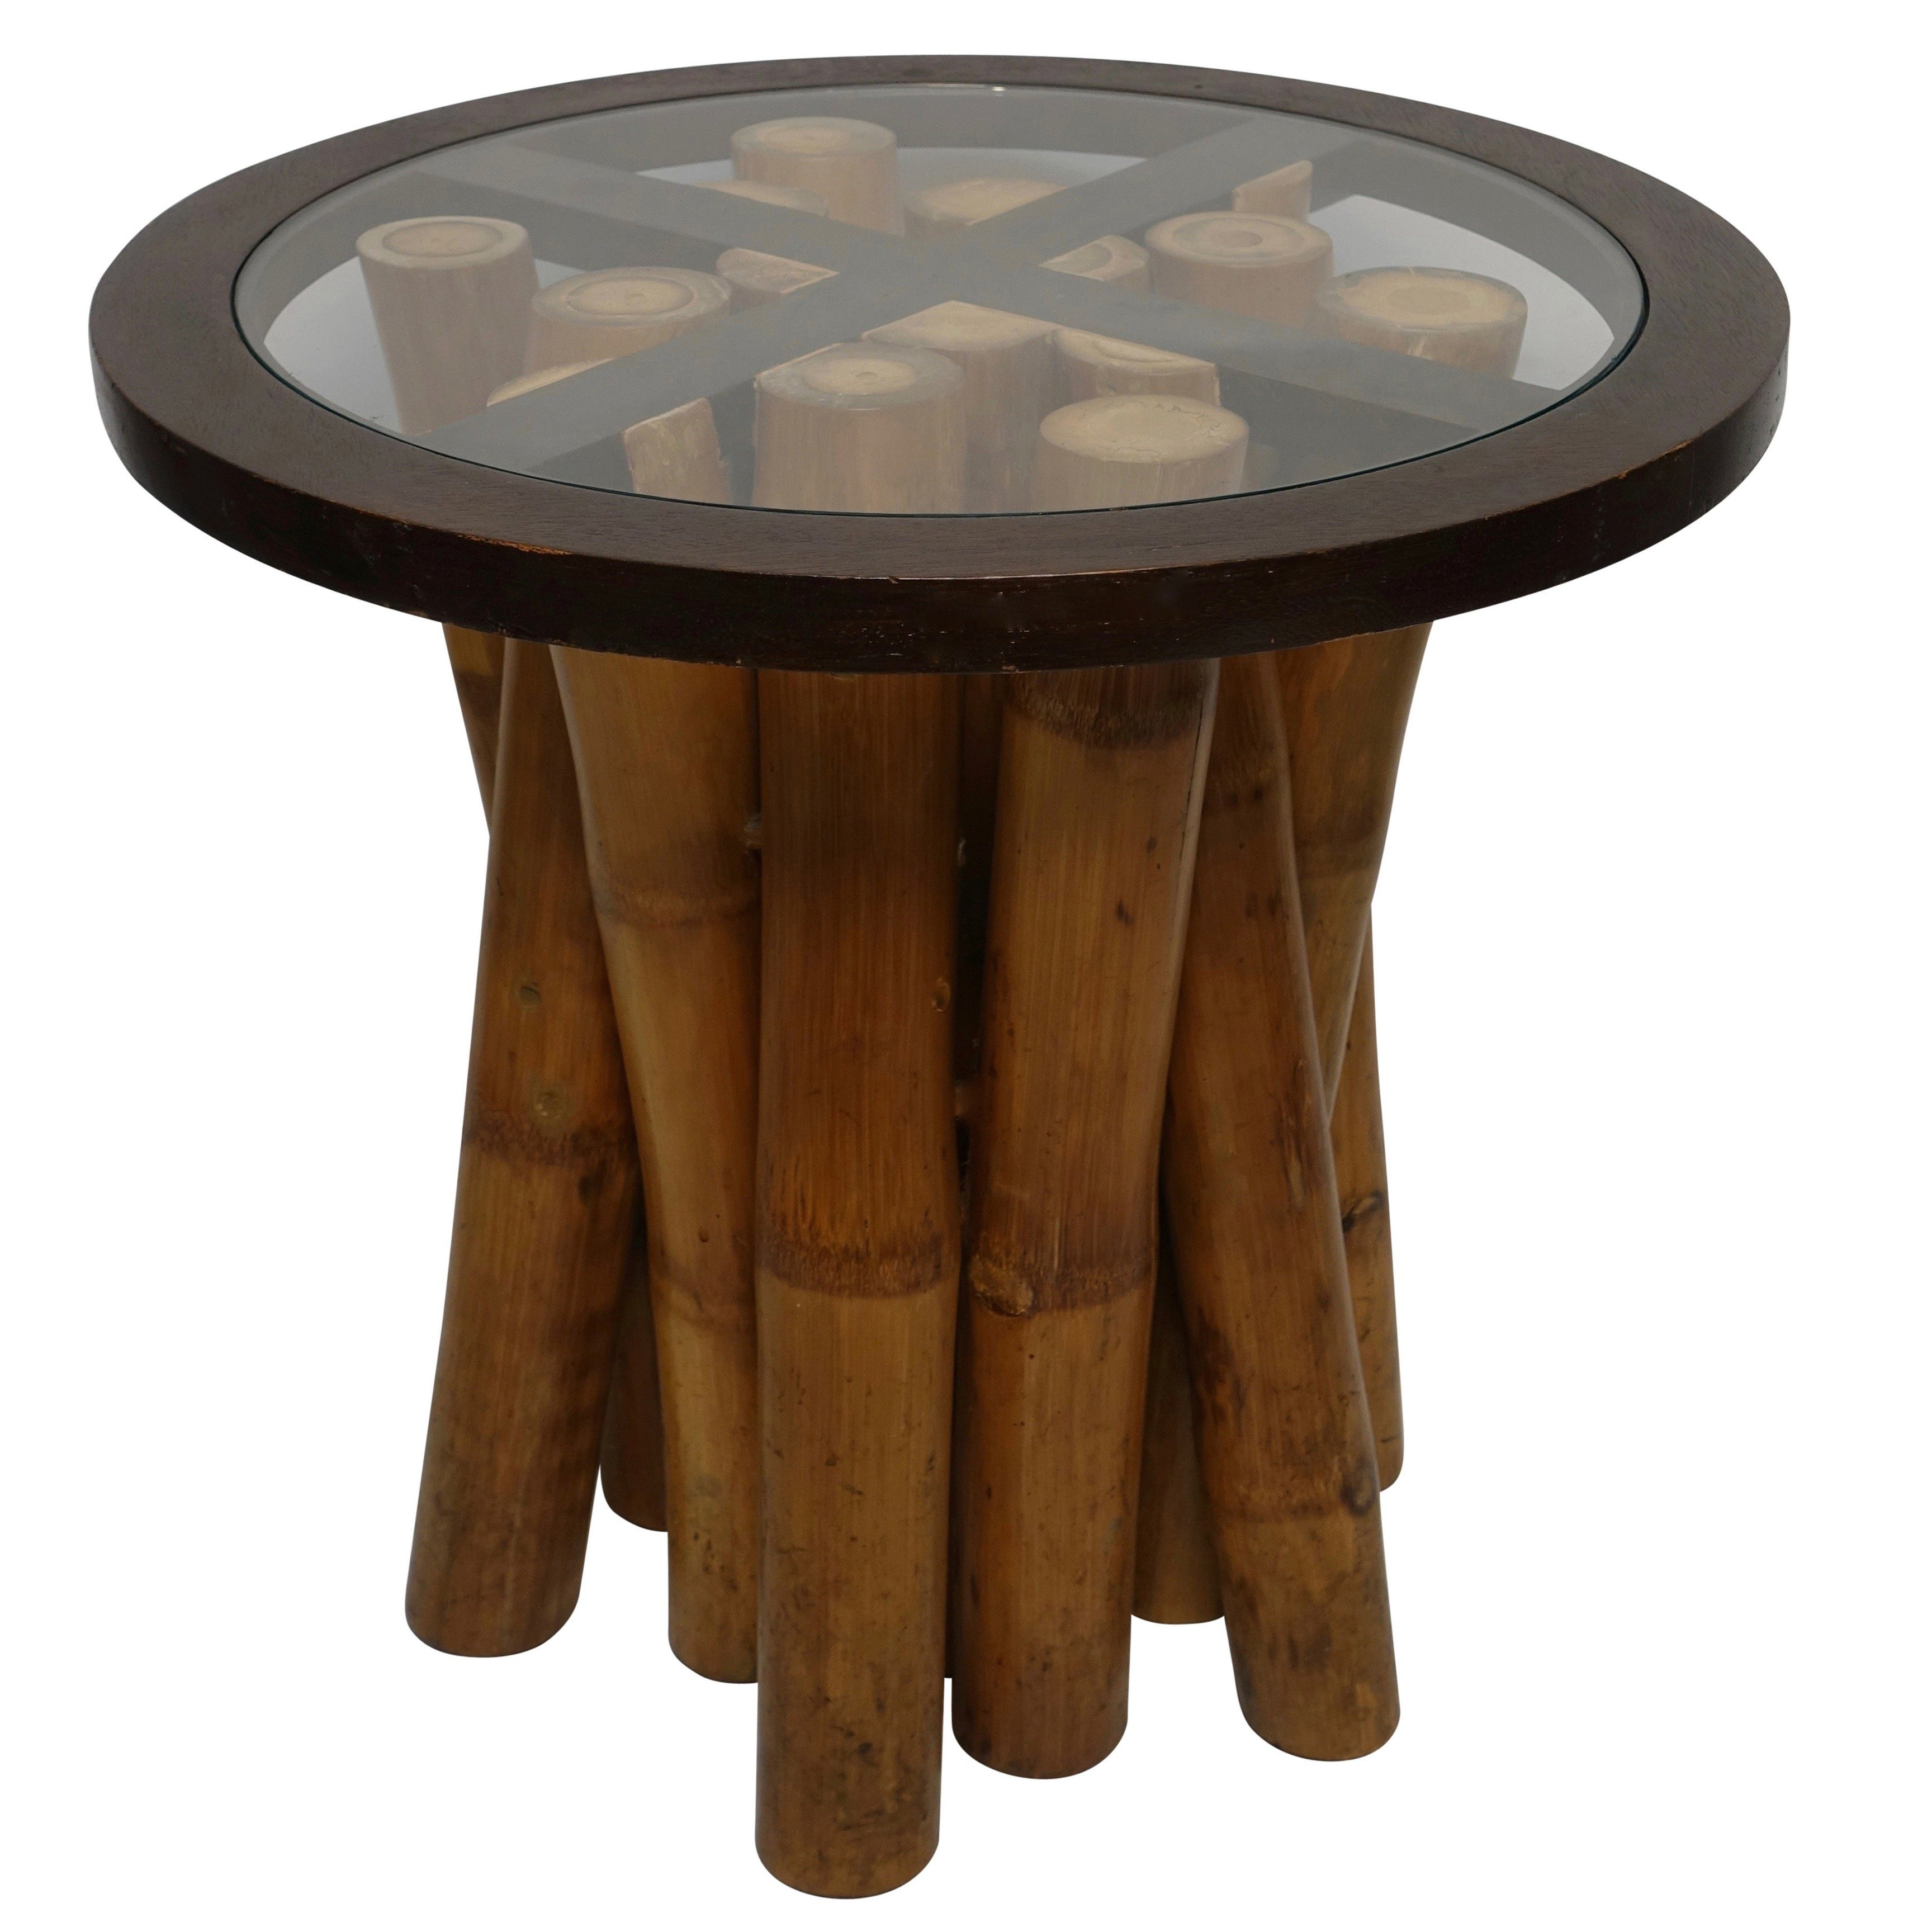 Mid Century Round Bamboo and Glass Side Table, Organic Modern circa 1970